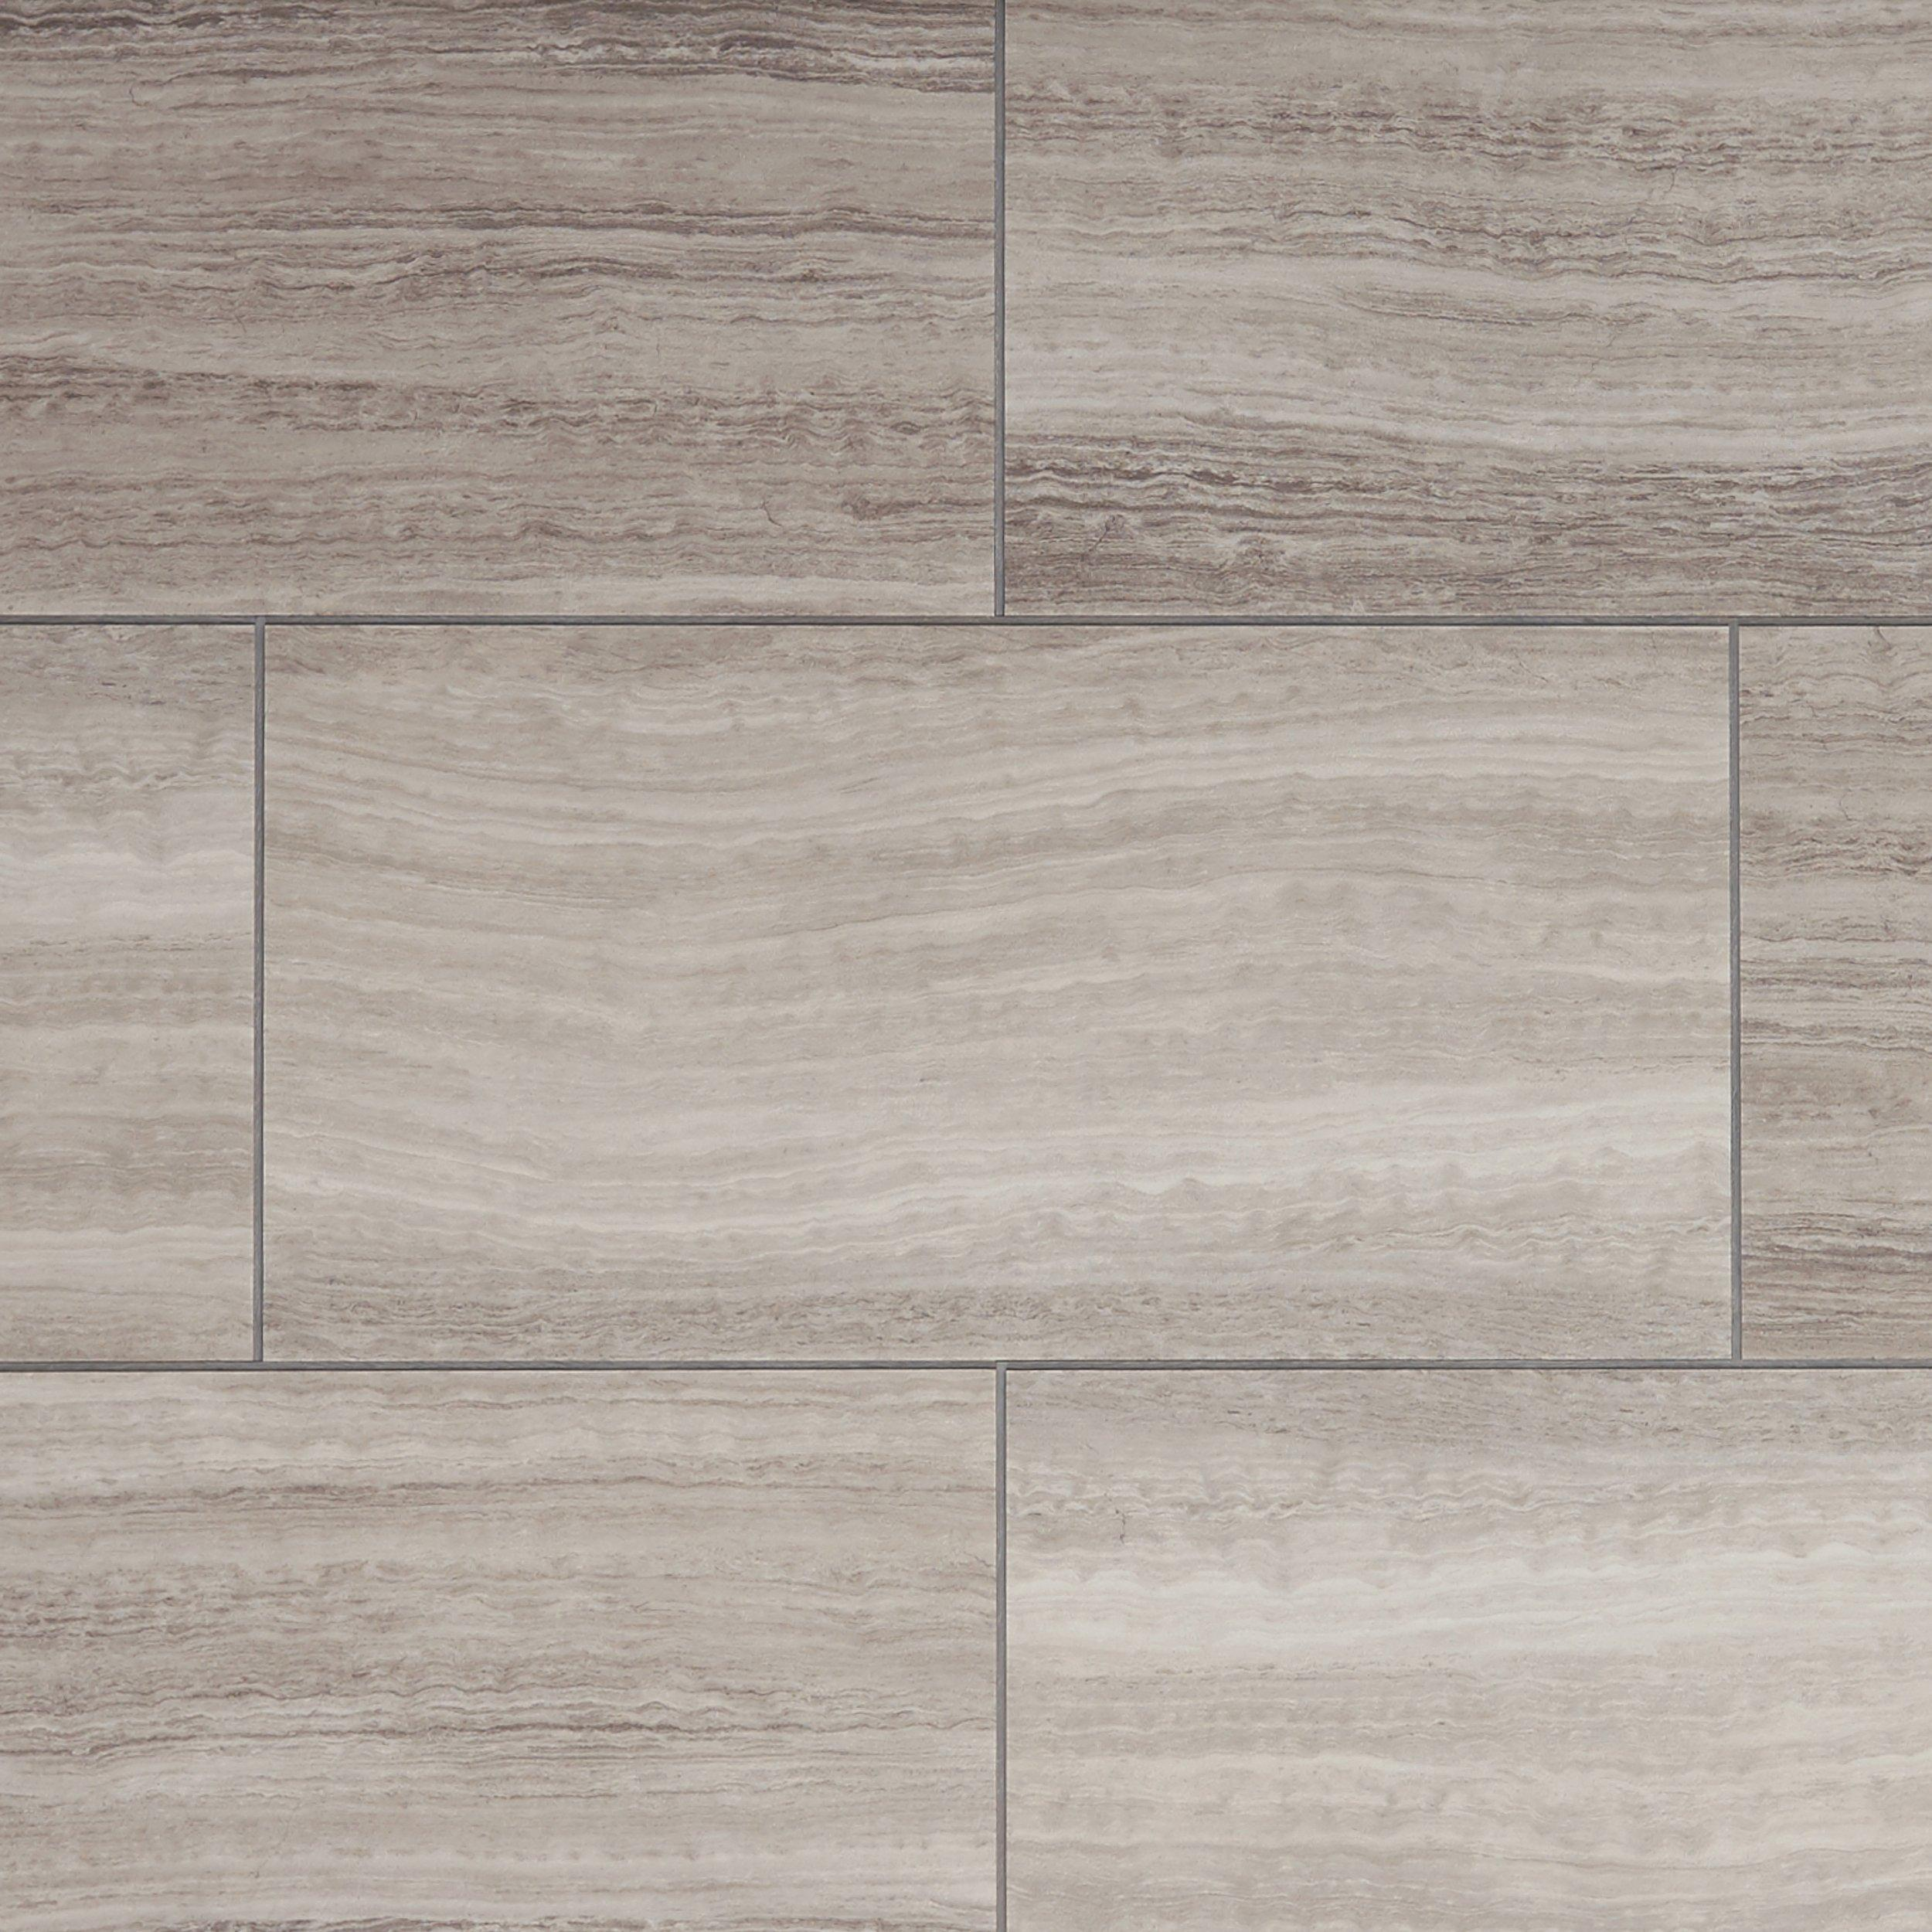 NuCore Gray Tile Plank with Cork Back  65mm  100376904